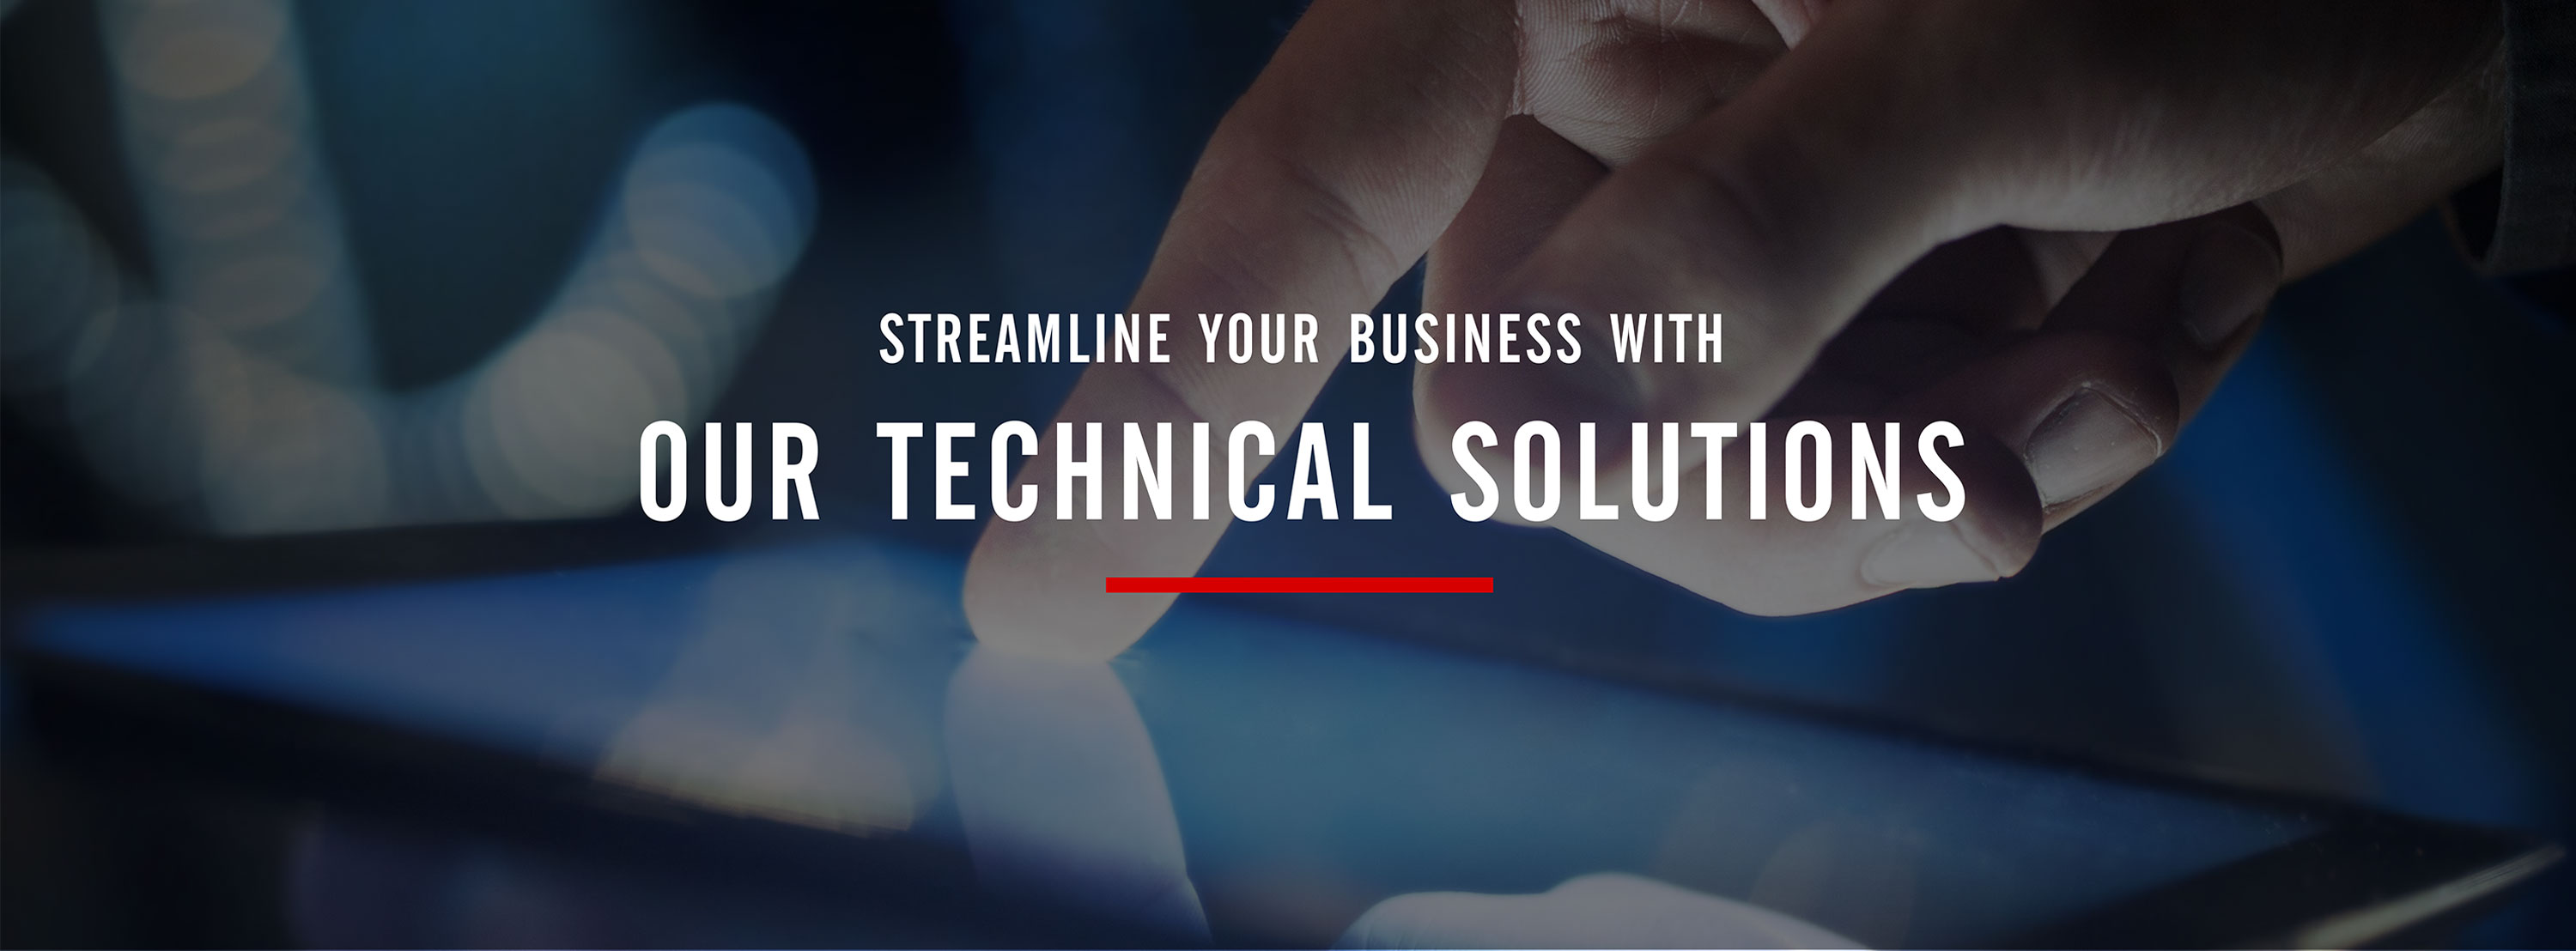 technical solutions edinburgh